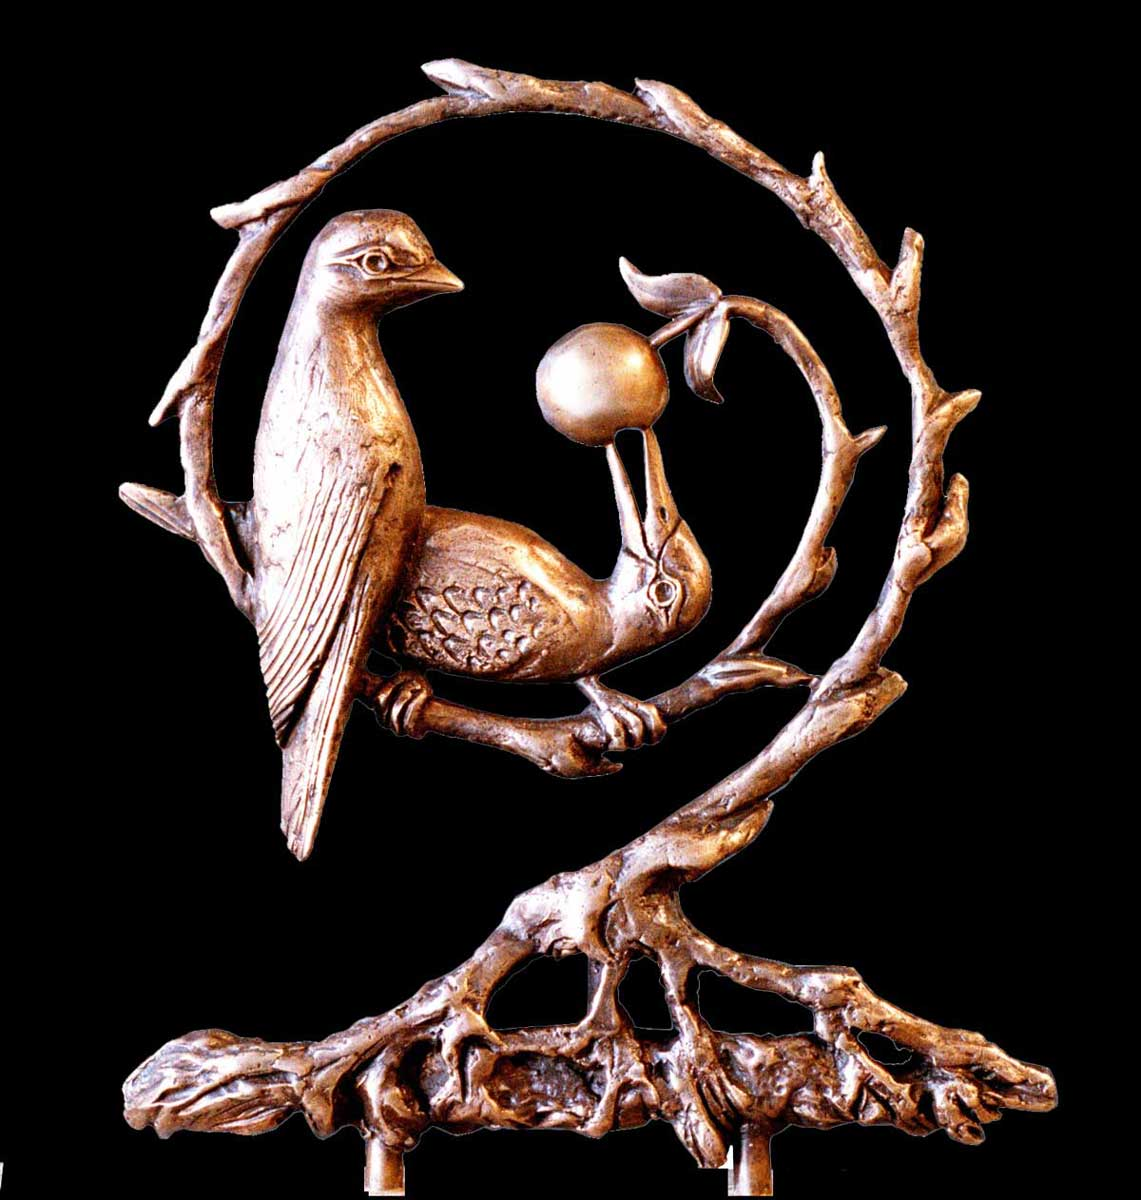 small sculpture based on strophe from Mundakya Upanishad